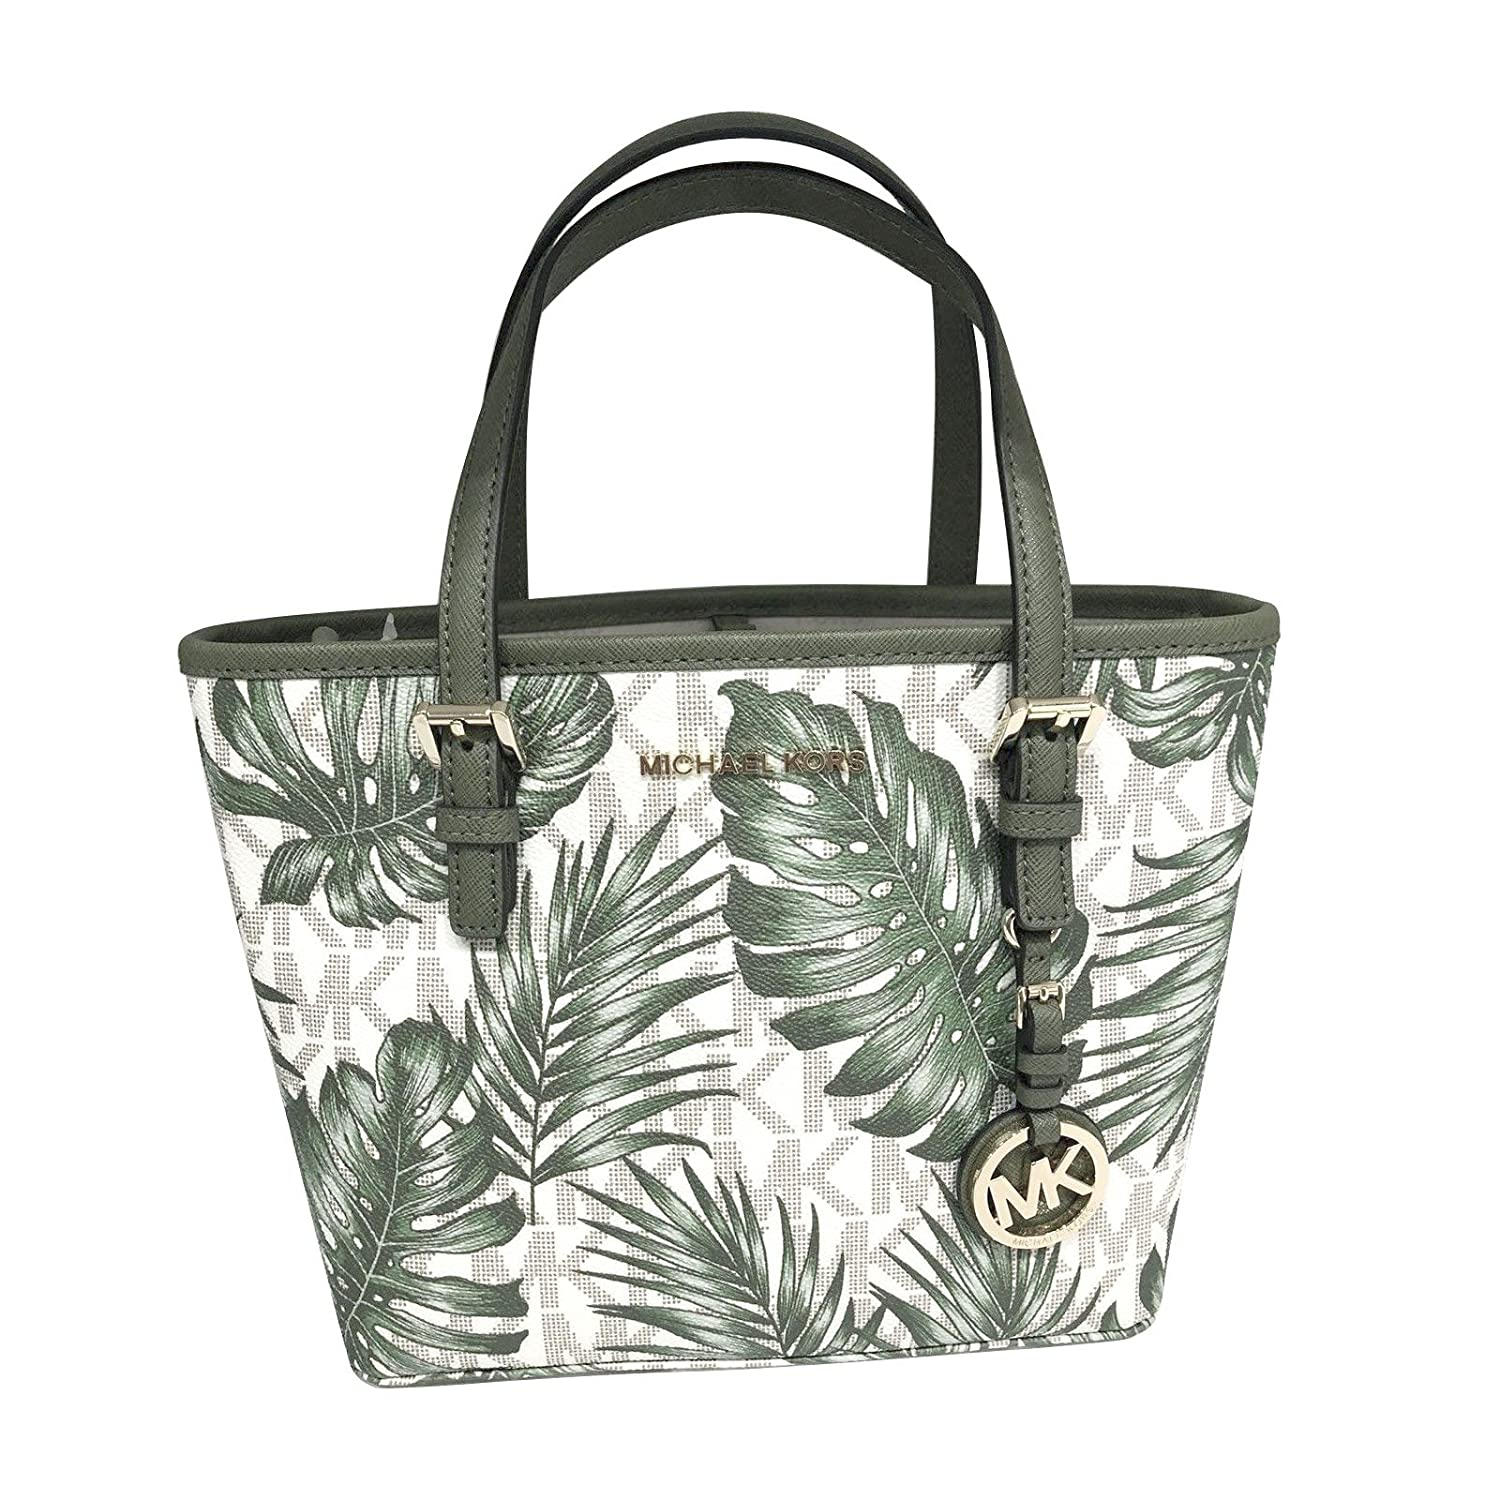 08106aaafe8441 Michael Kors Jet Set Travel XS Carryall Tote Palm Vanilla Olive PVC &  Leather: Amazon.co.uk: Shoes & Bags